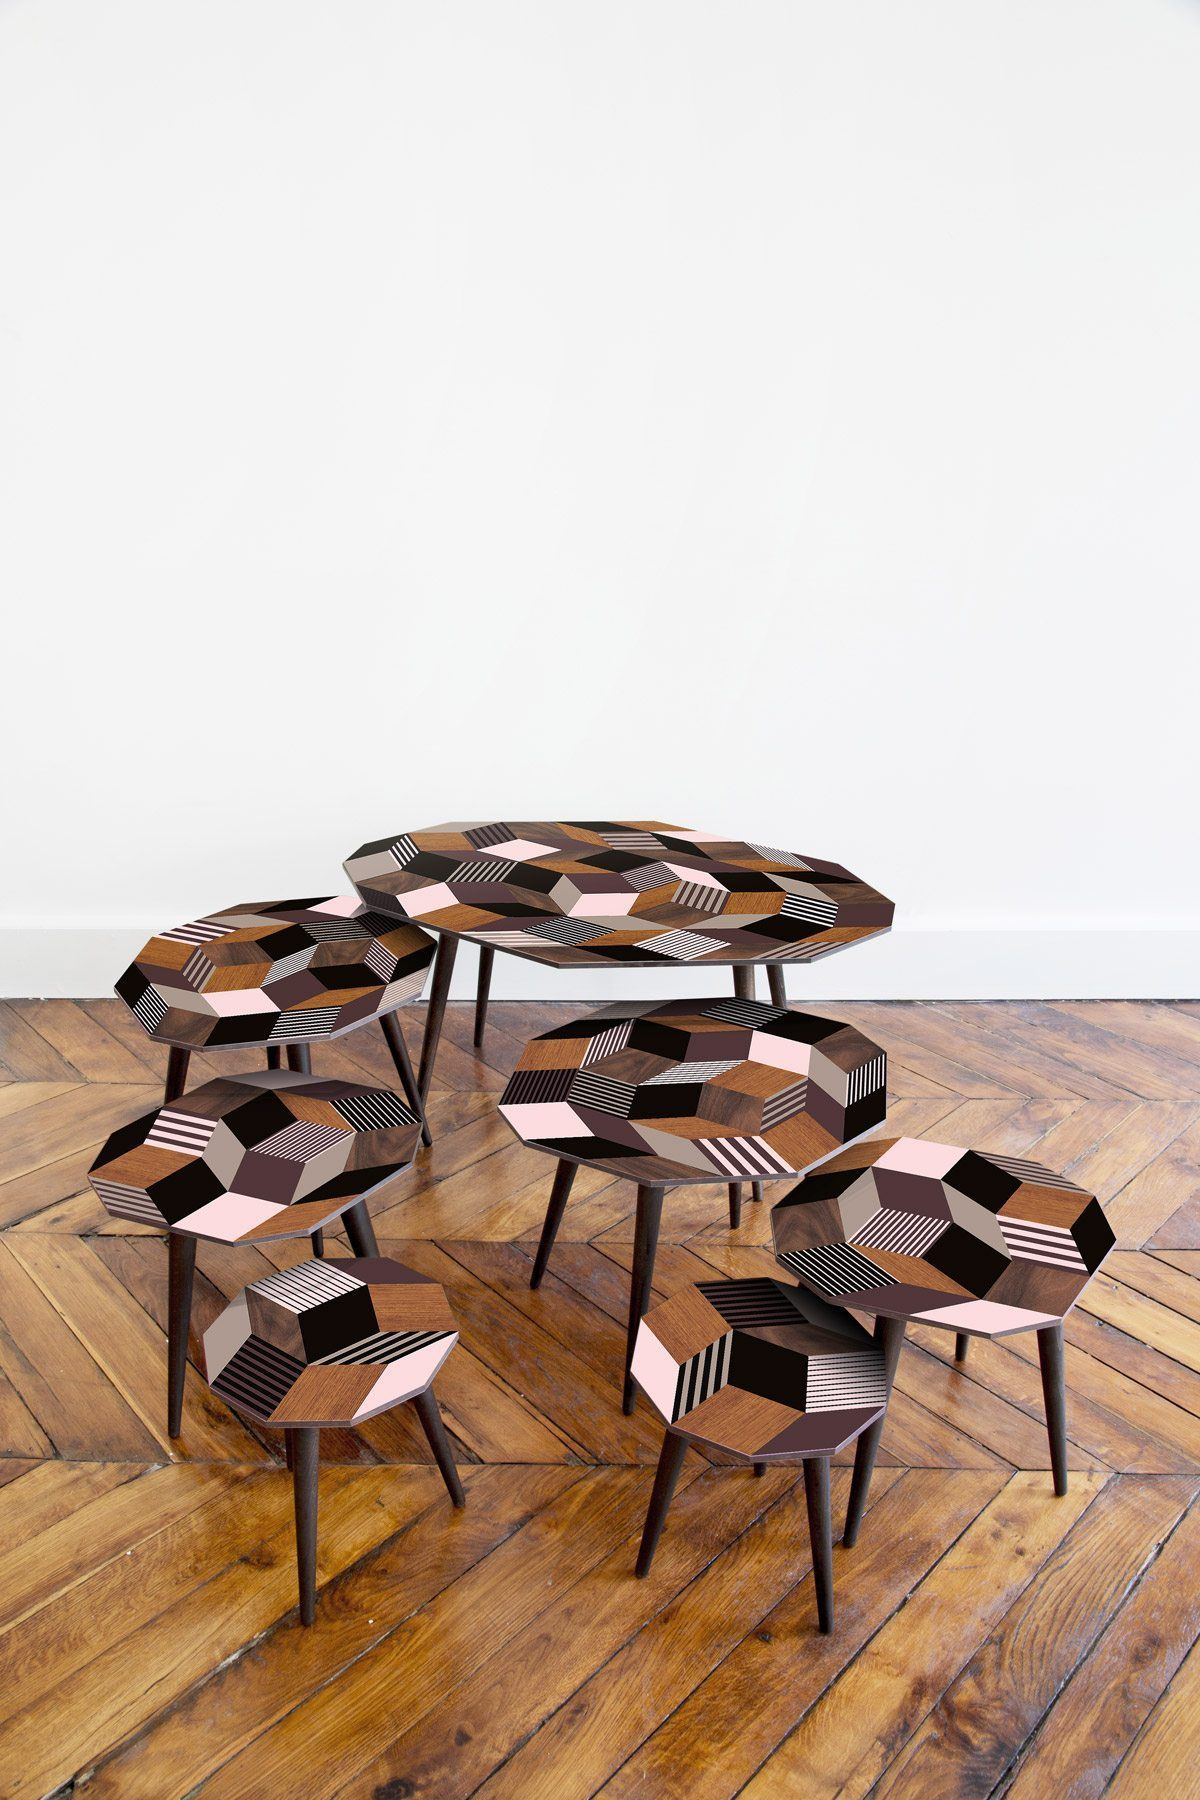 made in design plateaux des tables fancy wood par ichetkar pavage penrose marqueterie et rose photo jérémie Léon